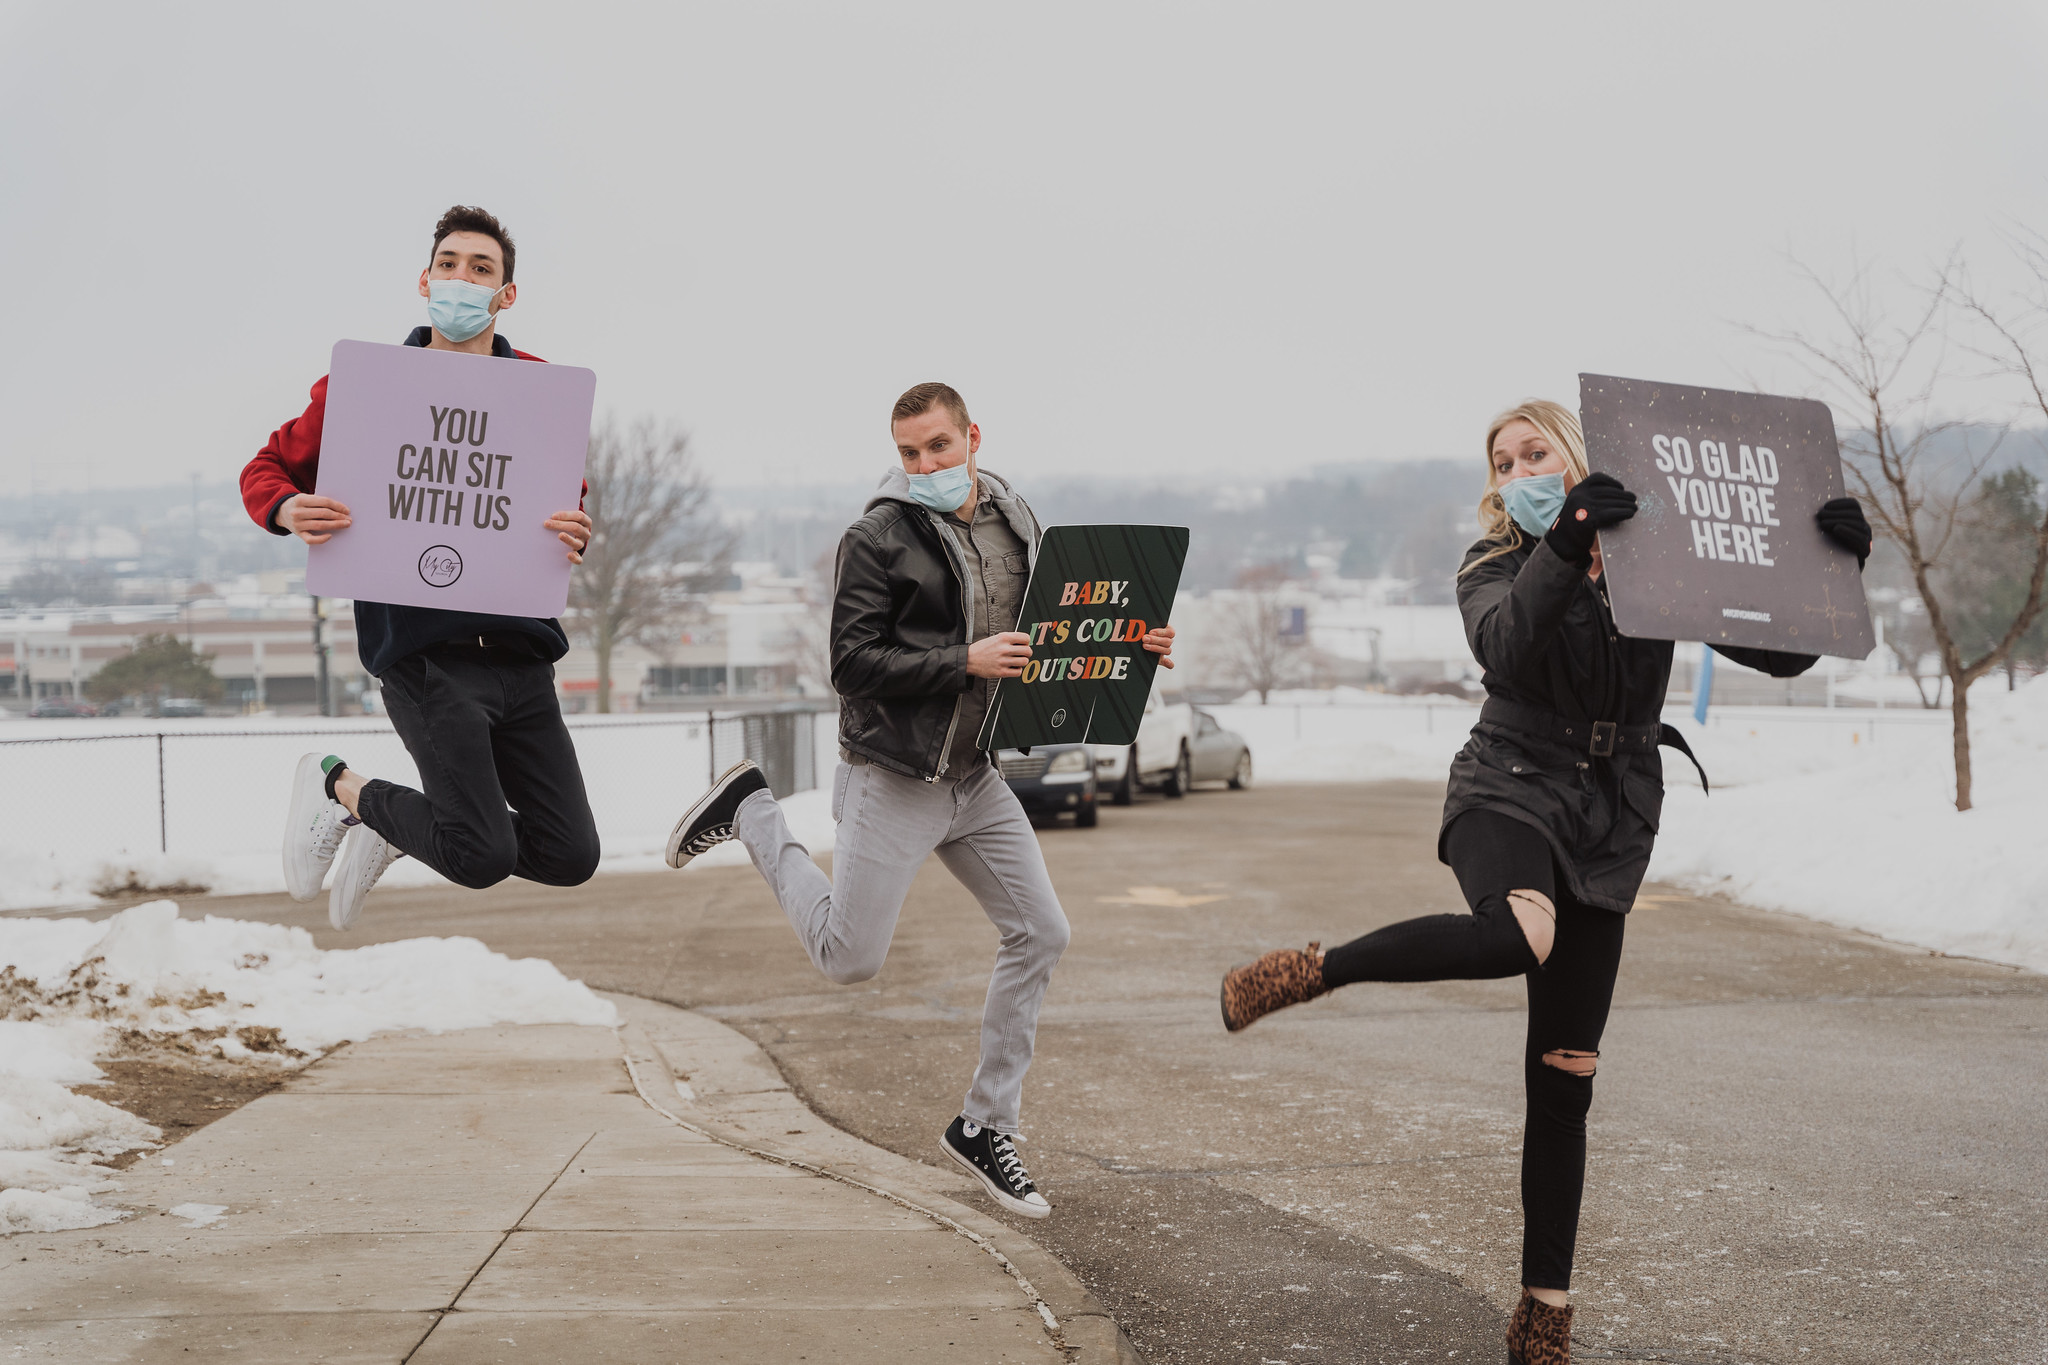 People jumping in the air holding welcome signs in the parking lot at a Christian church in Omaha Nebraska